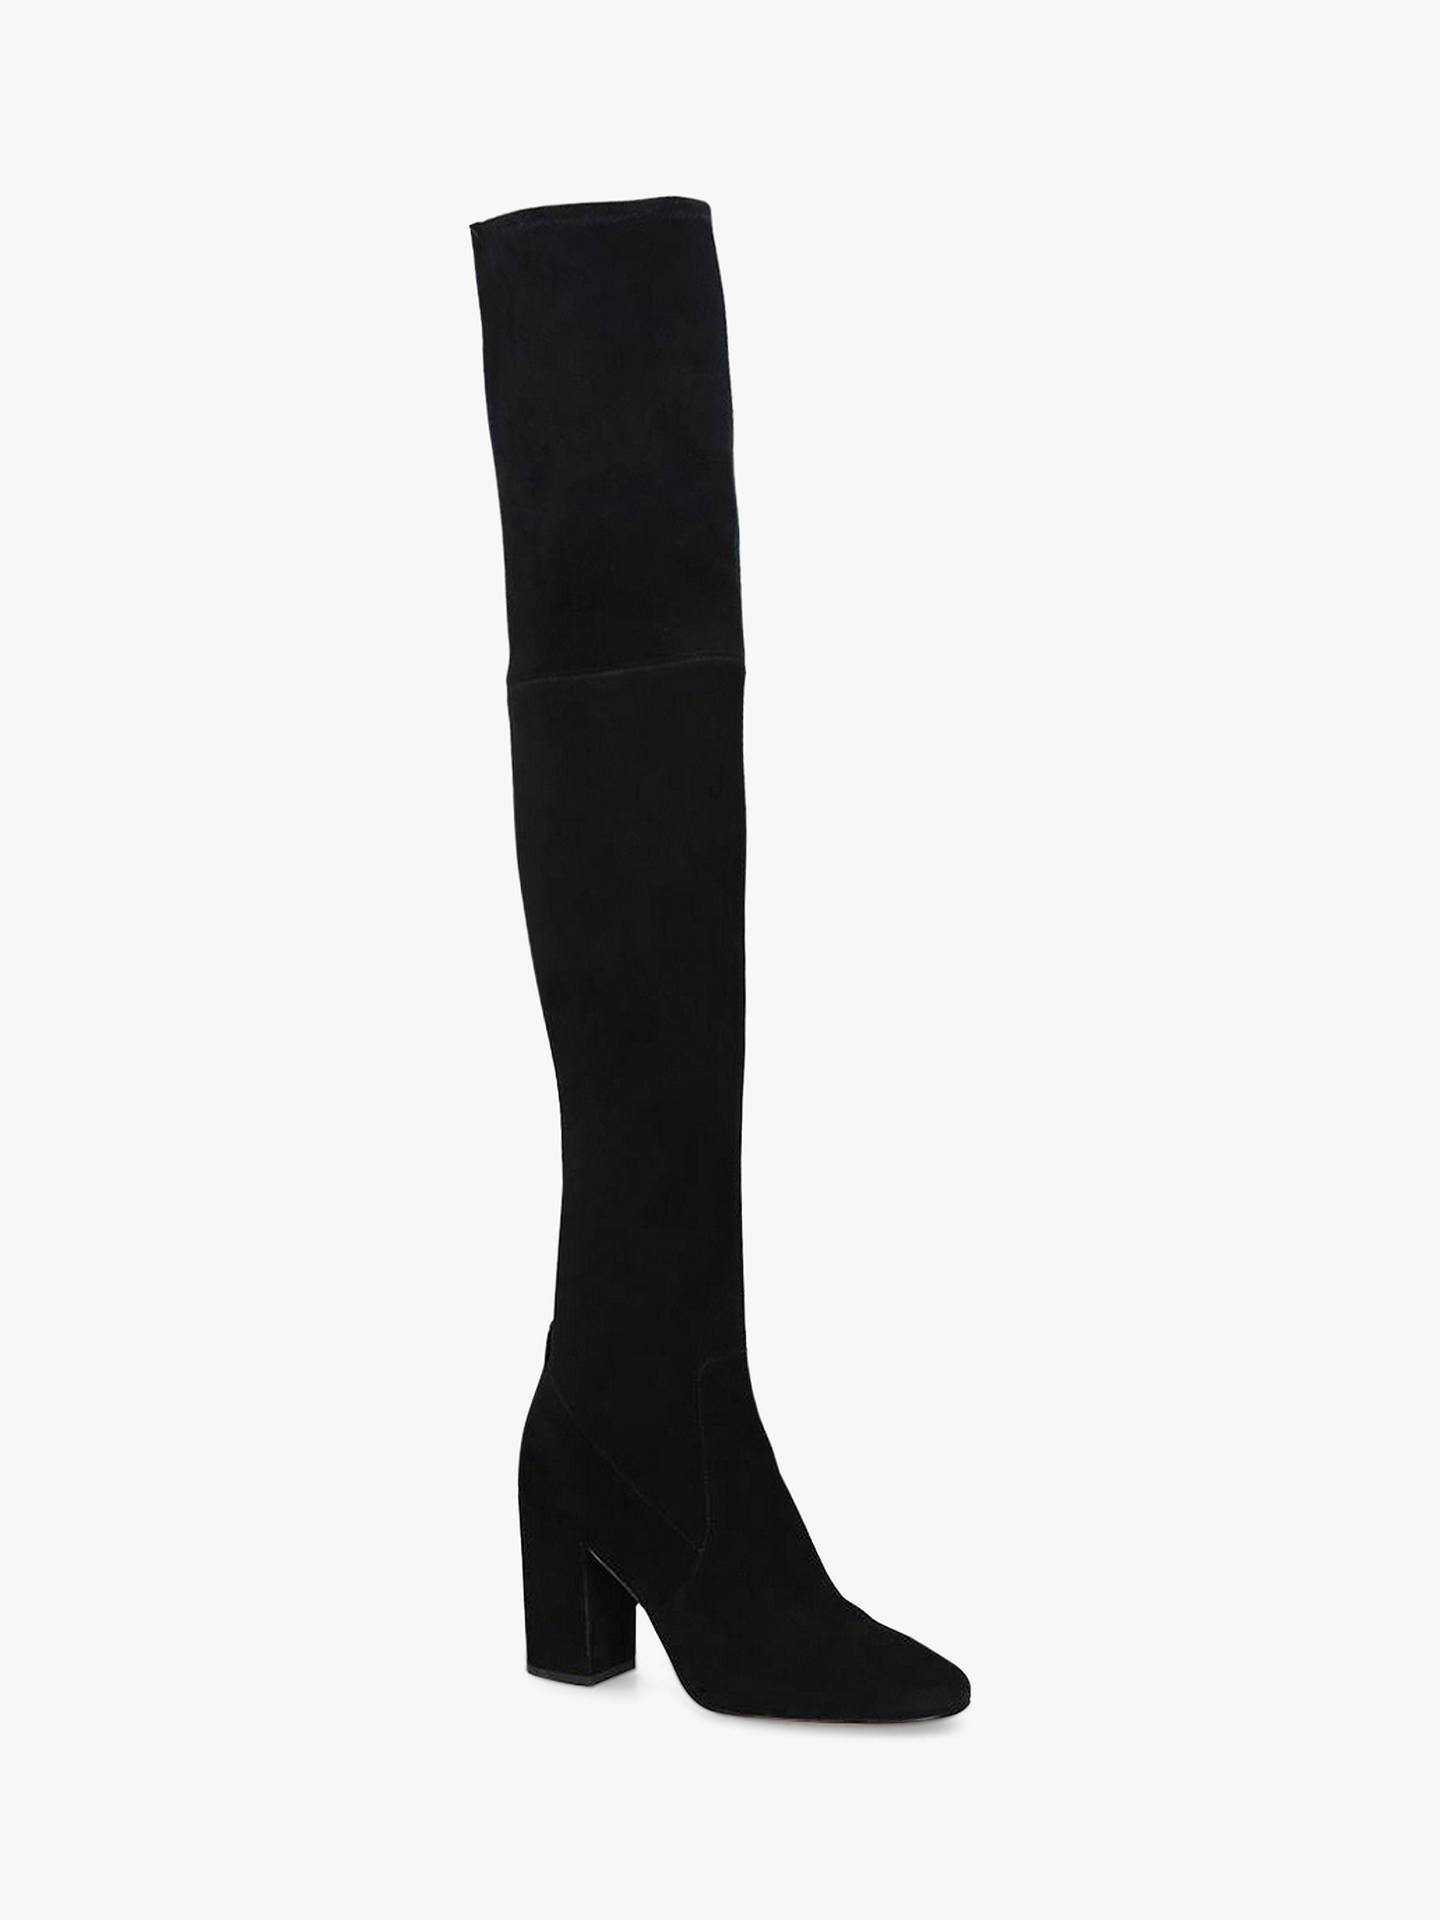 2b0915f8af6 ... Buy Coach Giselle Over The Knee Block Heel Boots